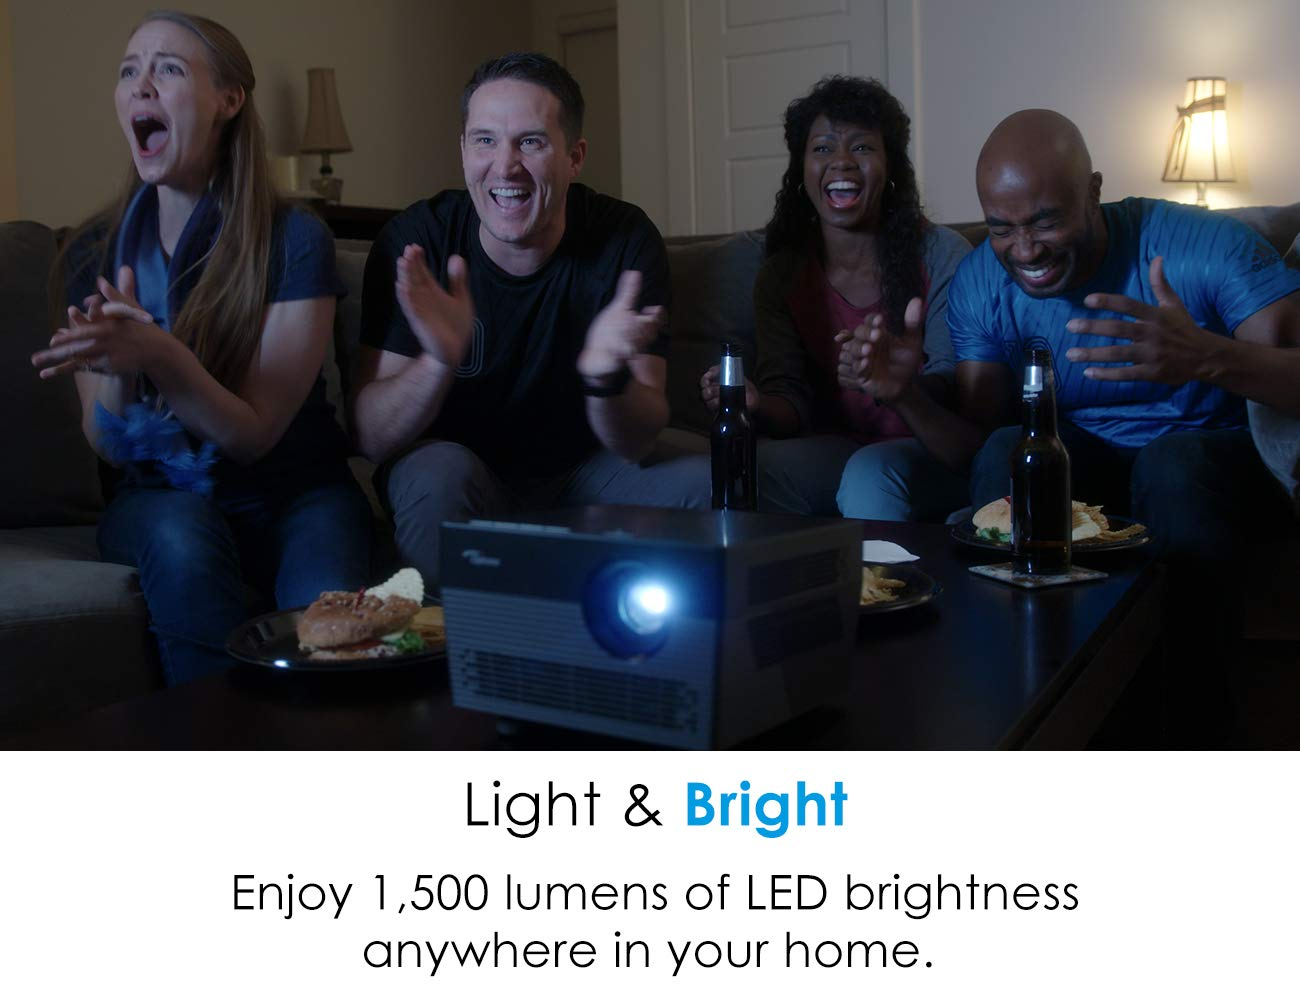 Optoma UHL55 True 4K HDR LED Smart Projector 2500 lumens LED Brightness Works with Alexa and Google